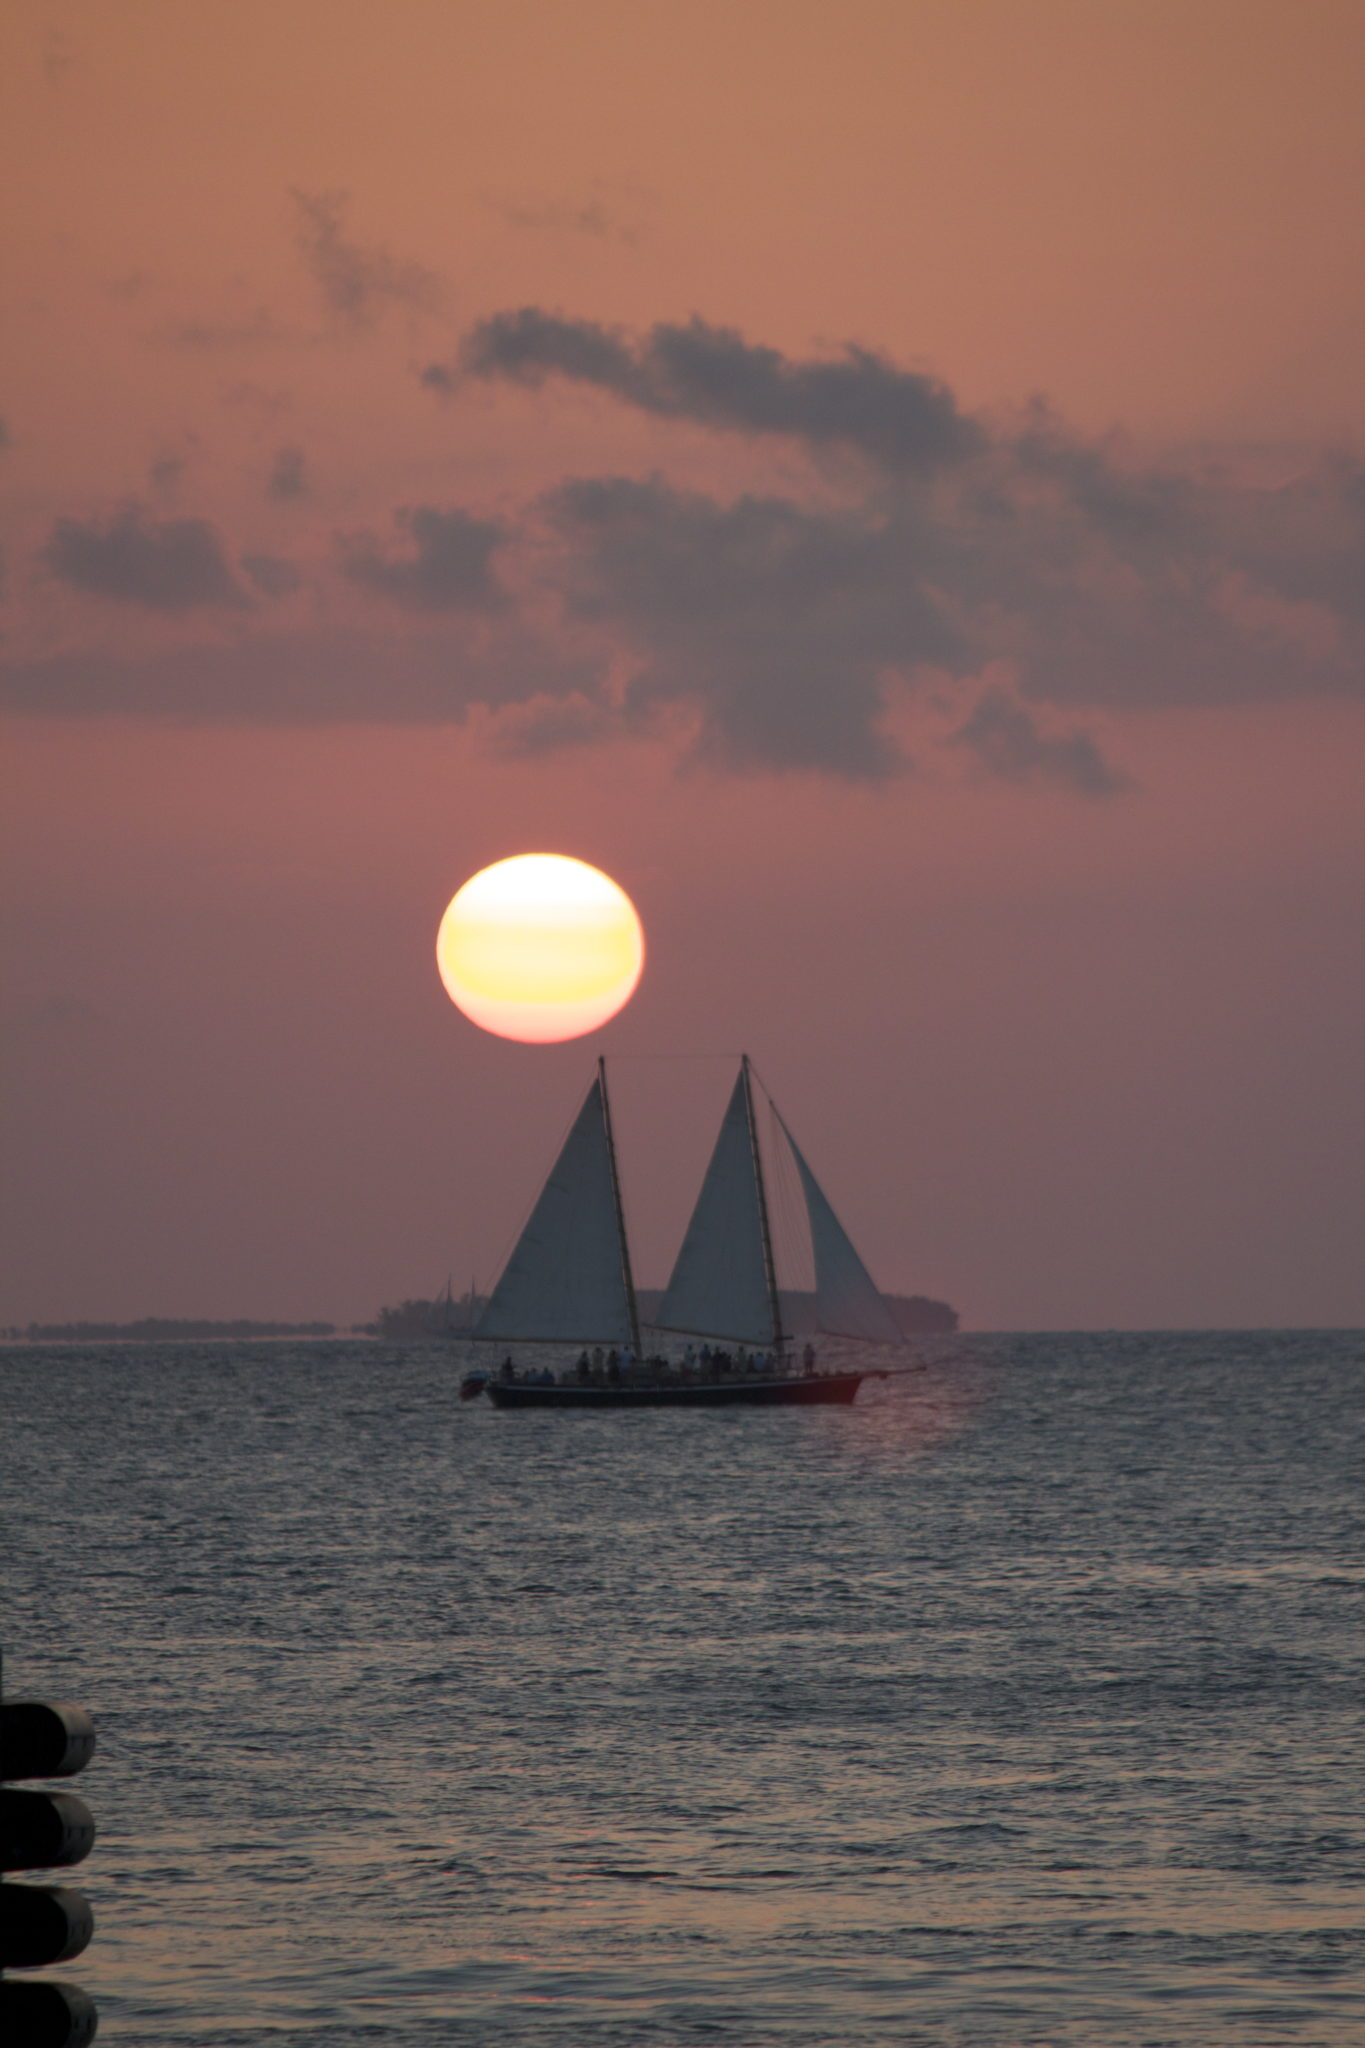 Sunset in Key West, FL